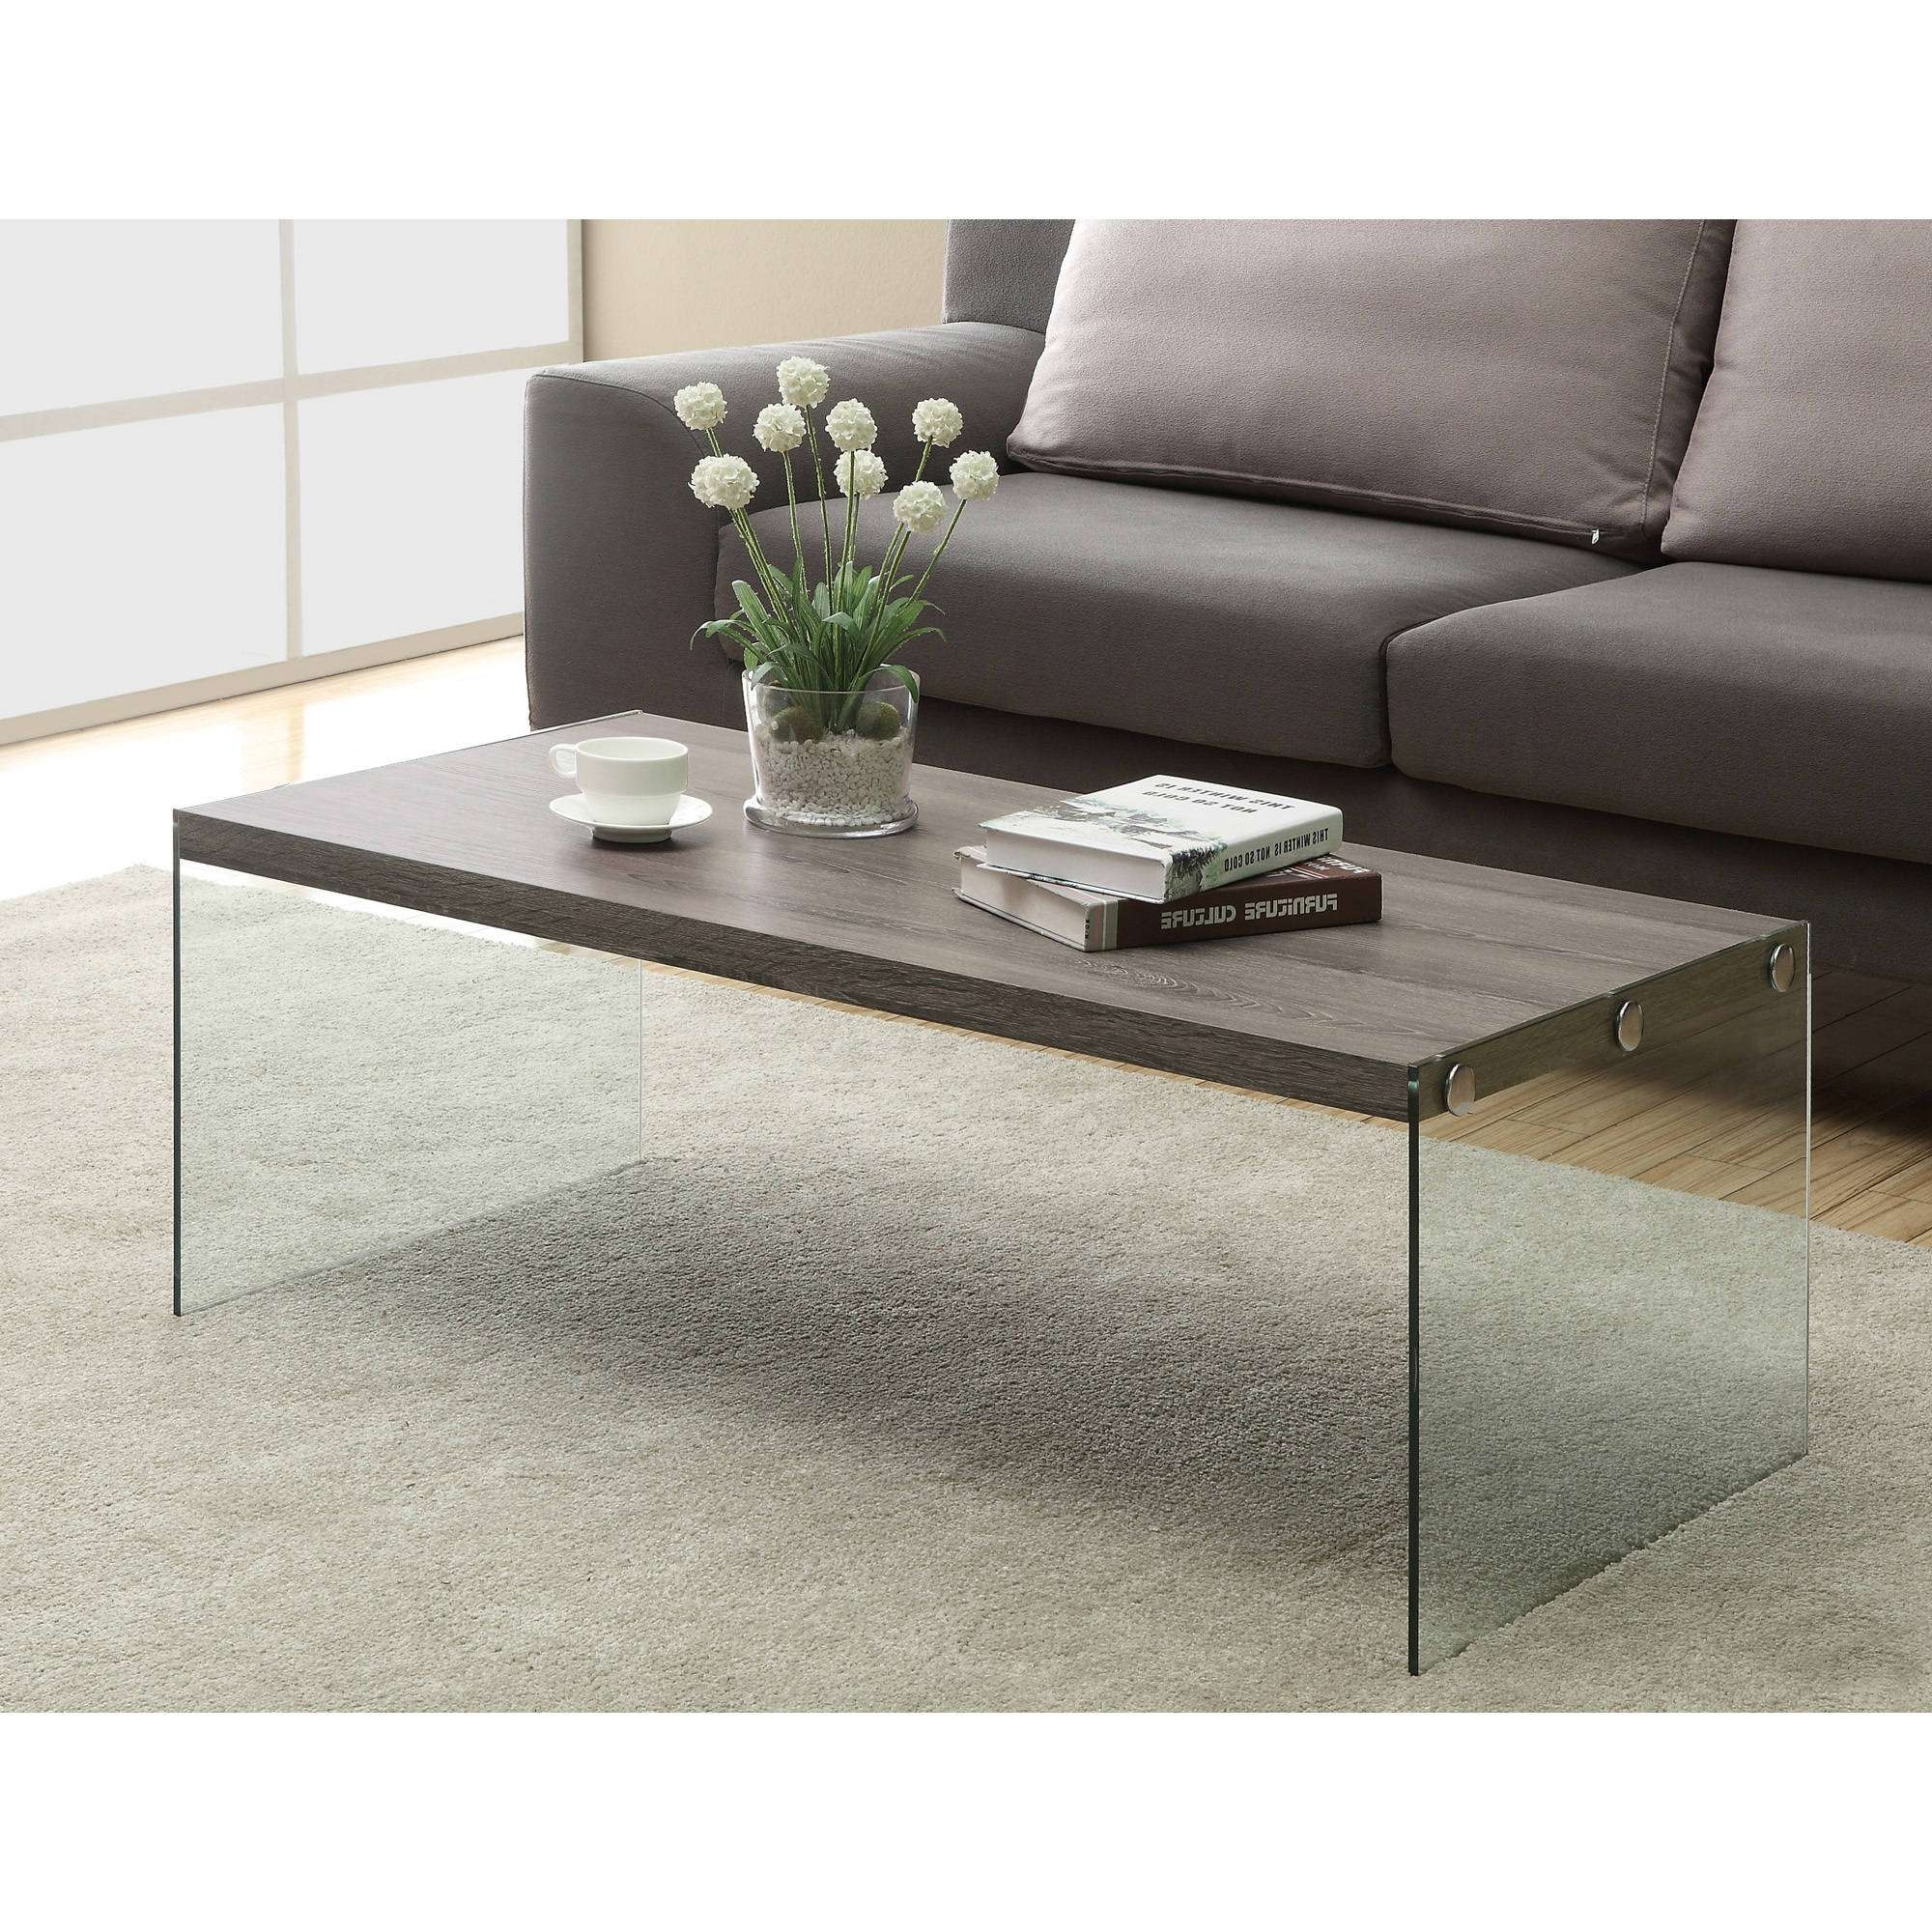 Wayfair Coffee Tables Ovalwayfair Coffee Tables In White Tags : 89 Pertaining To Well Known Wayfair Coffee Tables (View 18 of 20)